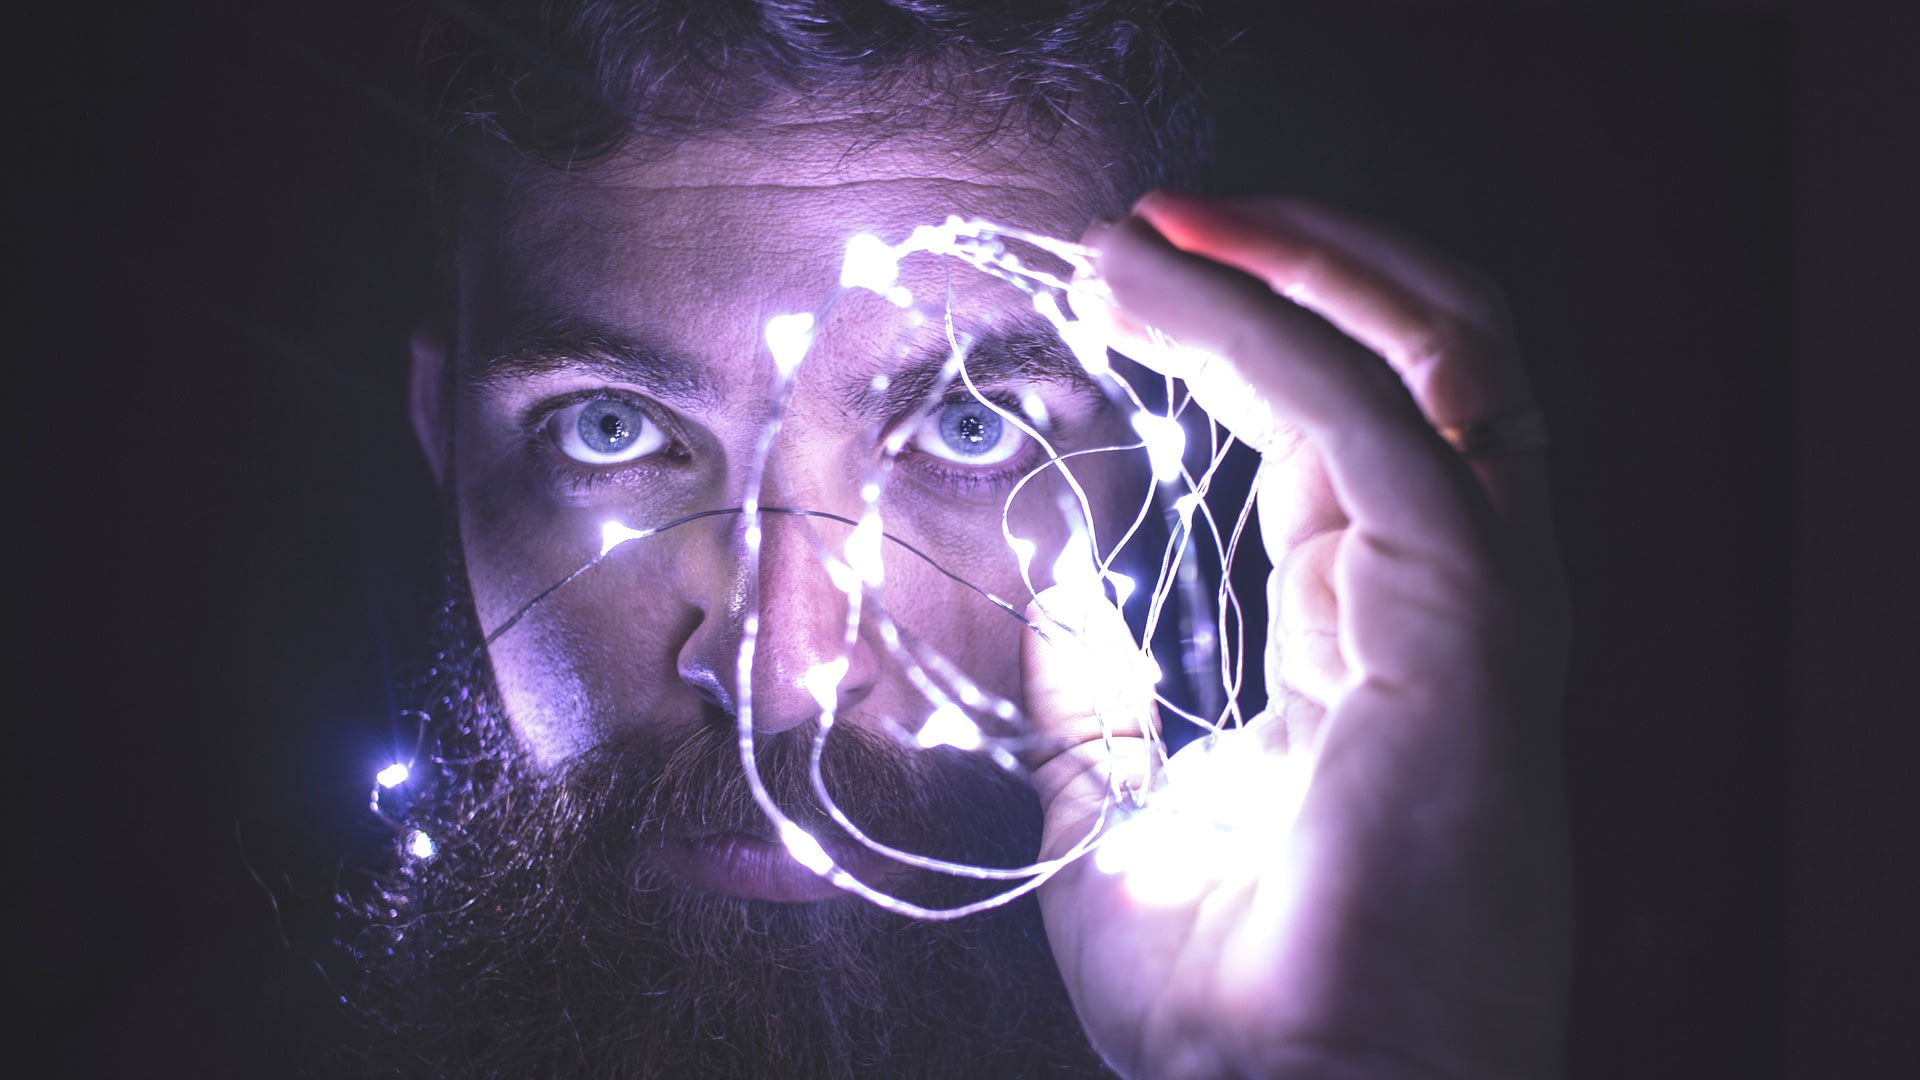 Bearded man holding up a string of led lights near his eyes